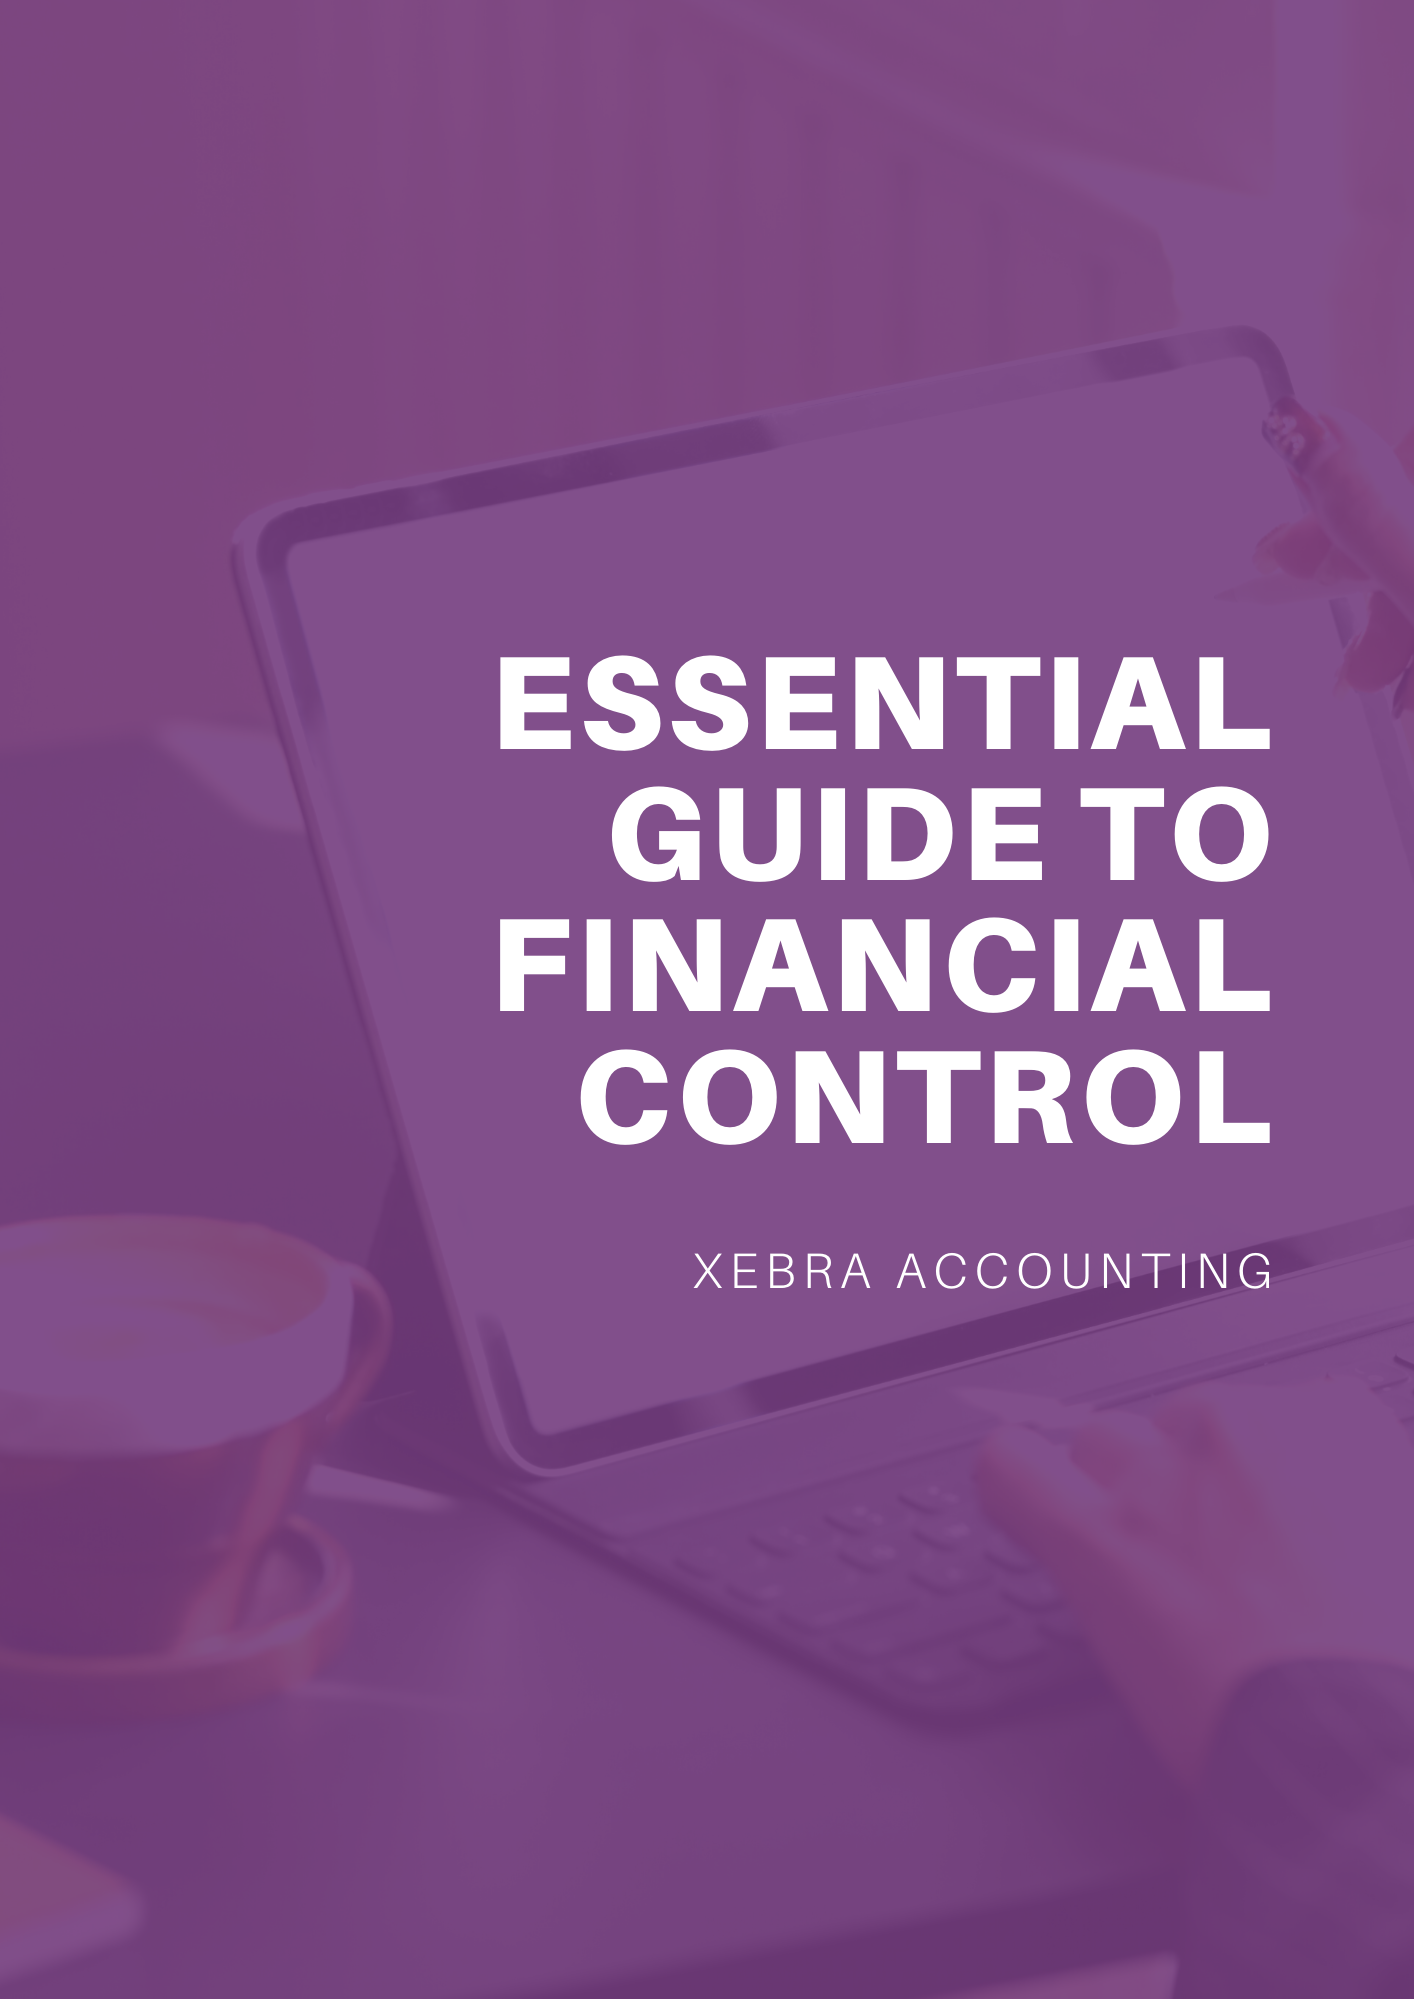 The Essential Guise to Financial Control